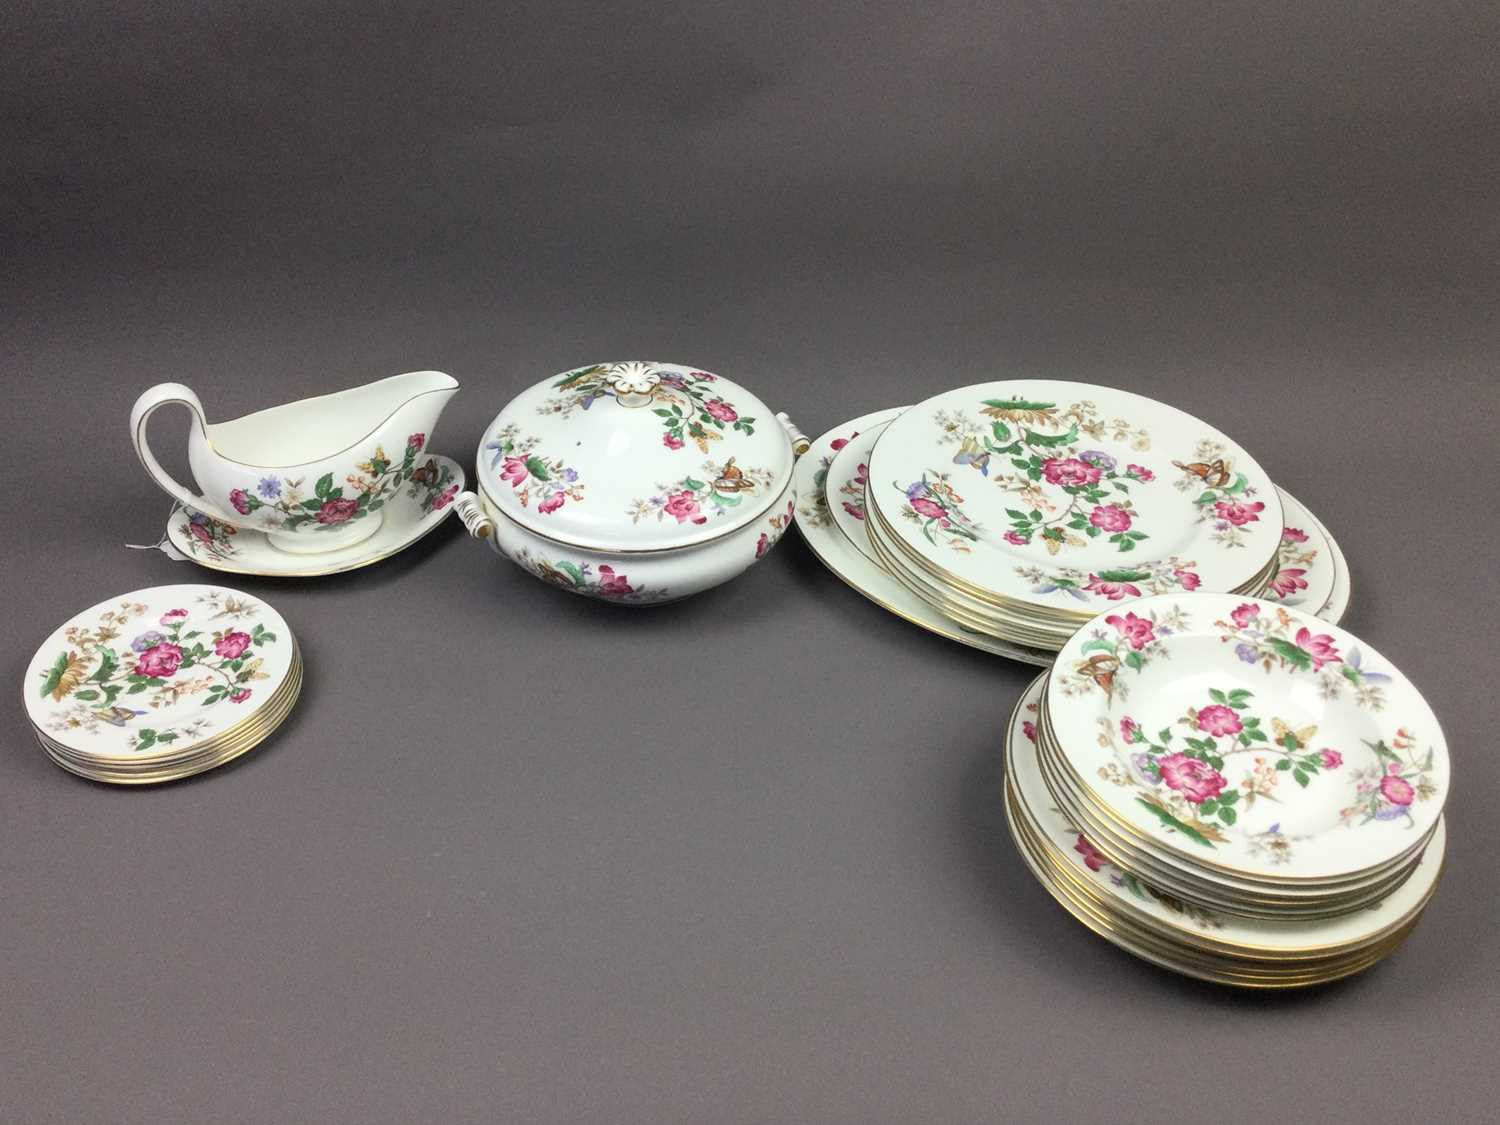 Lot 53 - A WEDGWOOD DINNER SERVICE